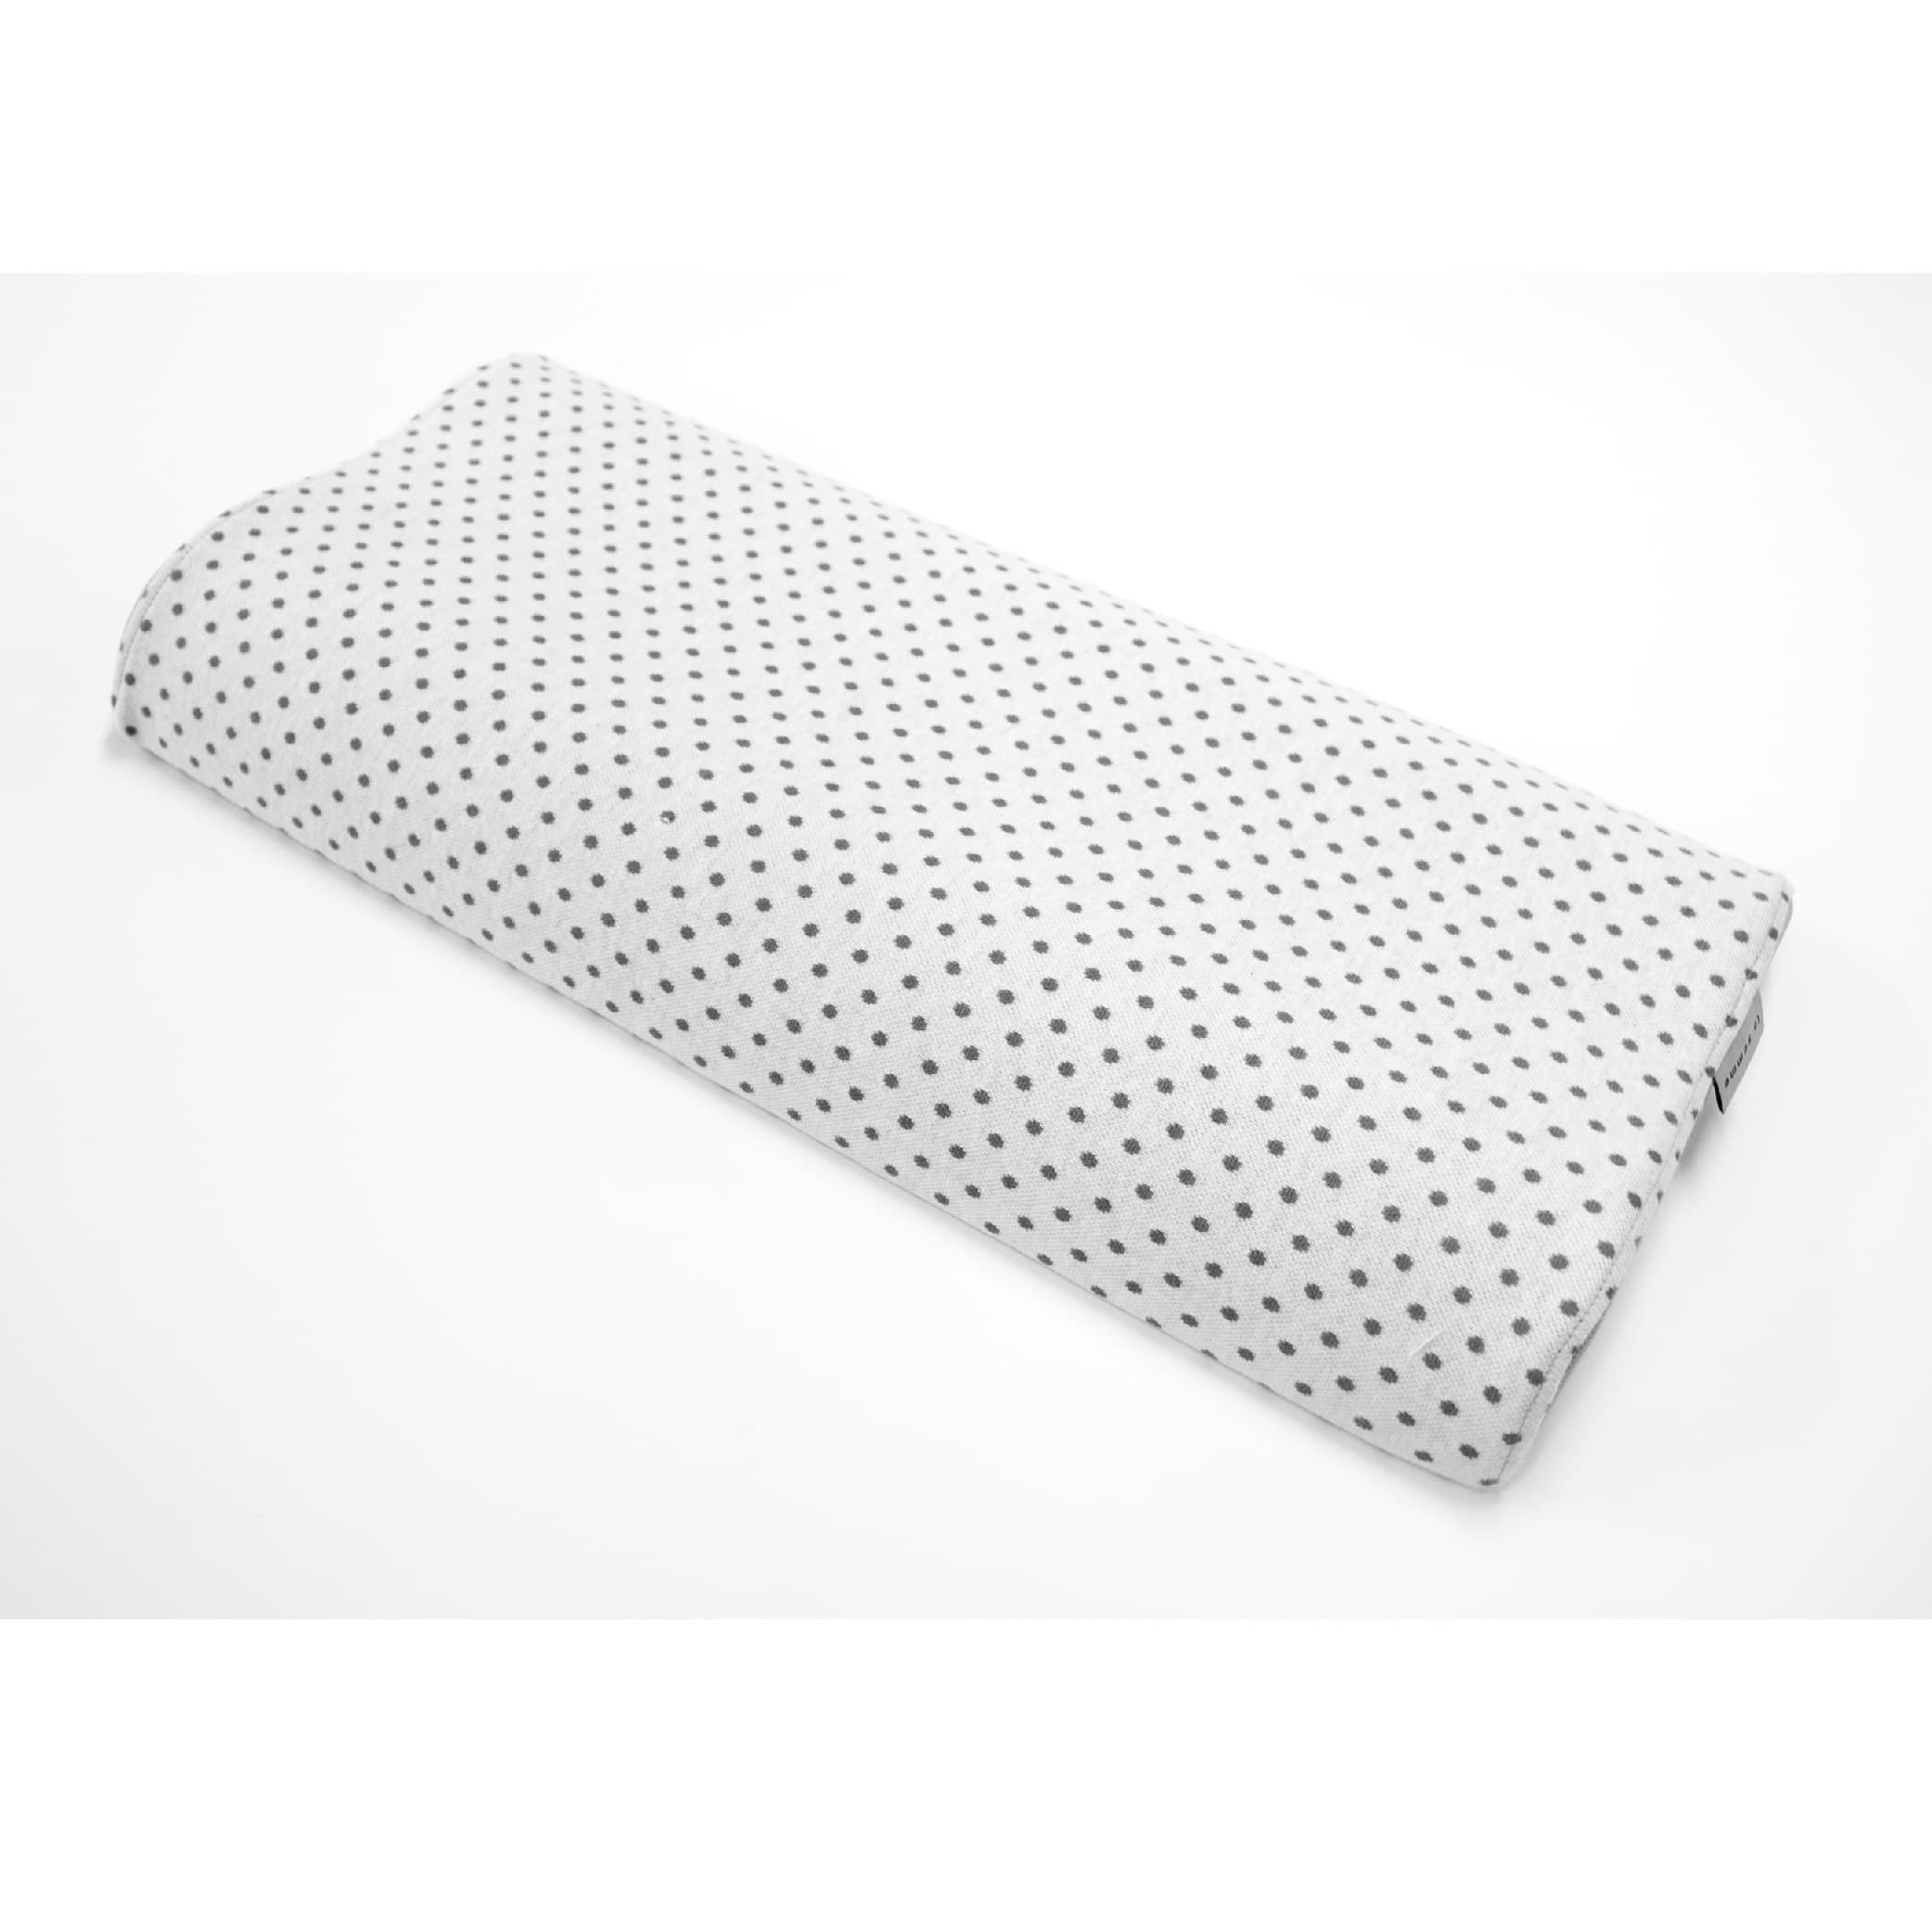 Kids Memory Foam Pillow